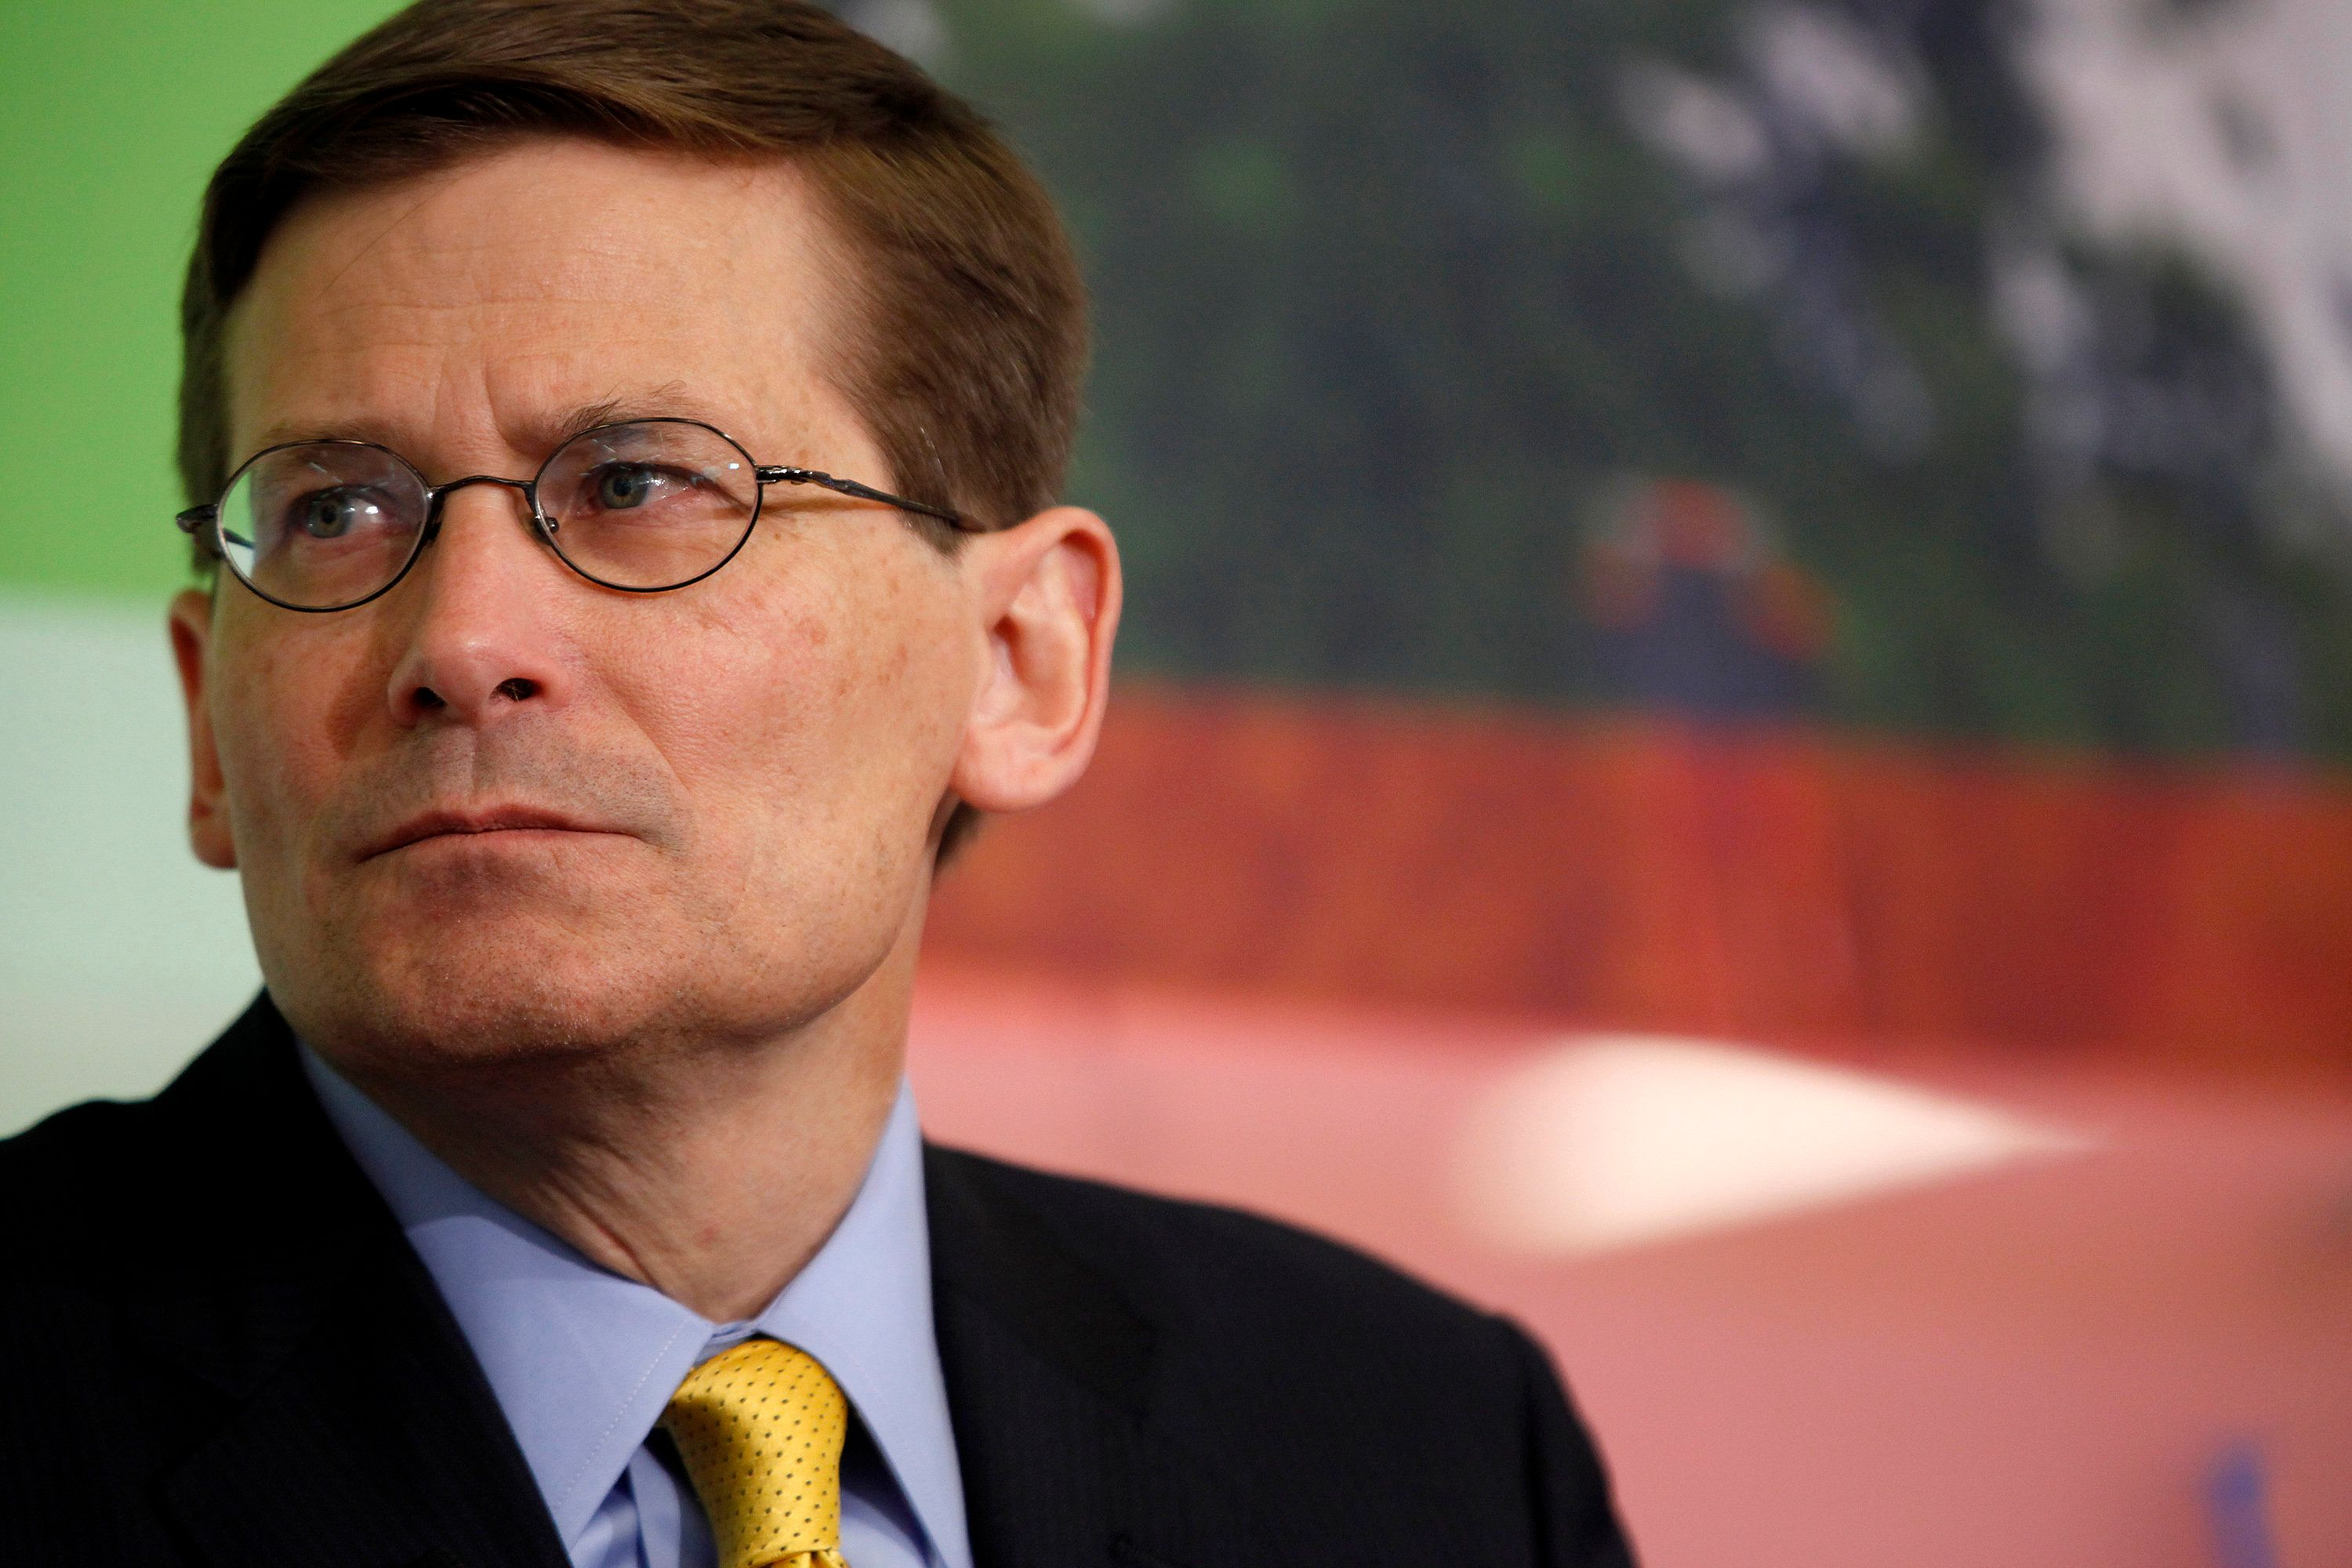 Former acting CIA director Mike Morrell underscored the seriousness of the reports that Russia interfered in the U.S. electio